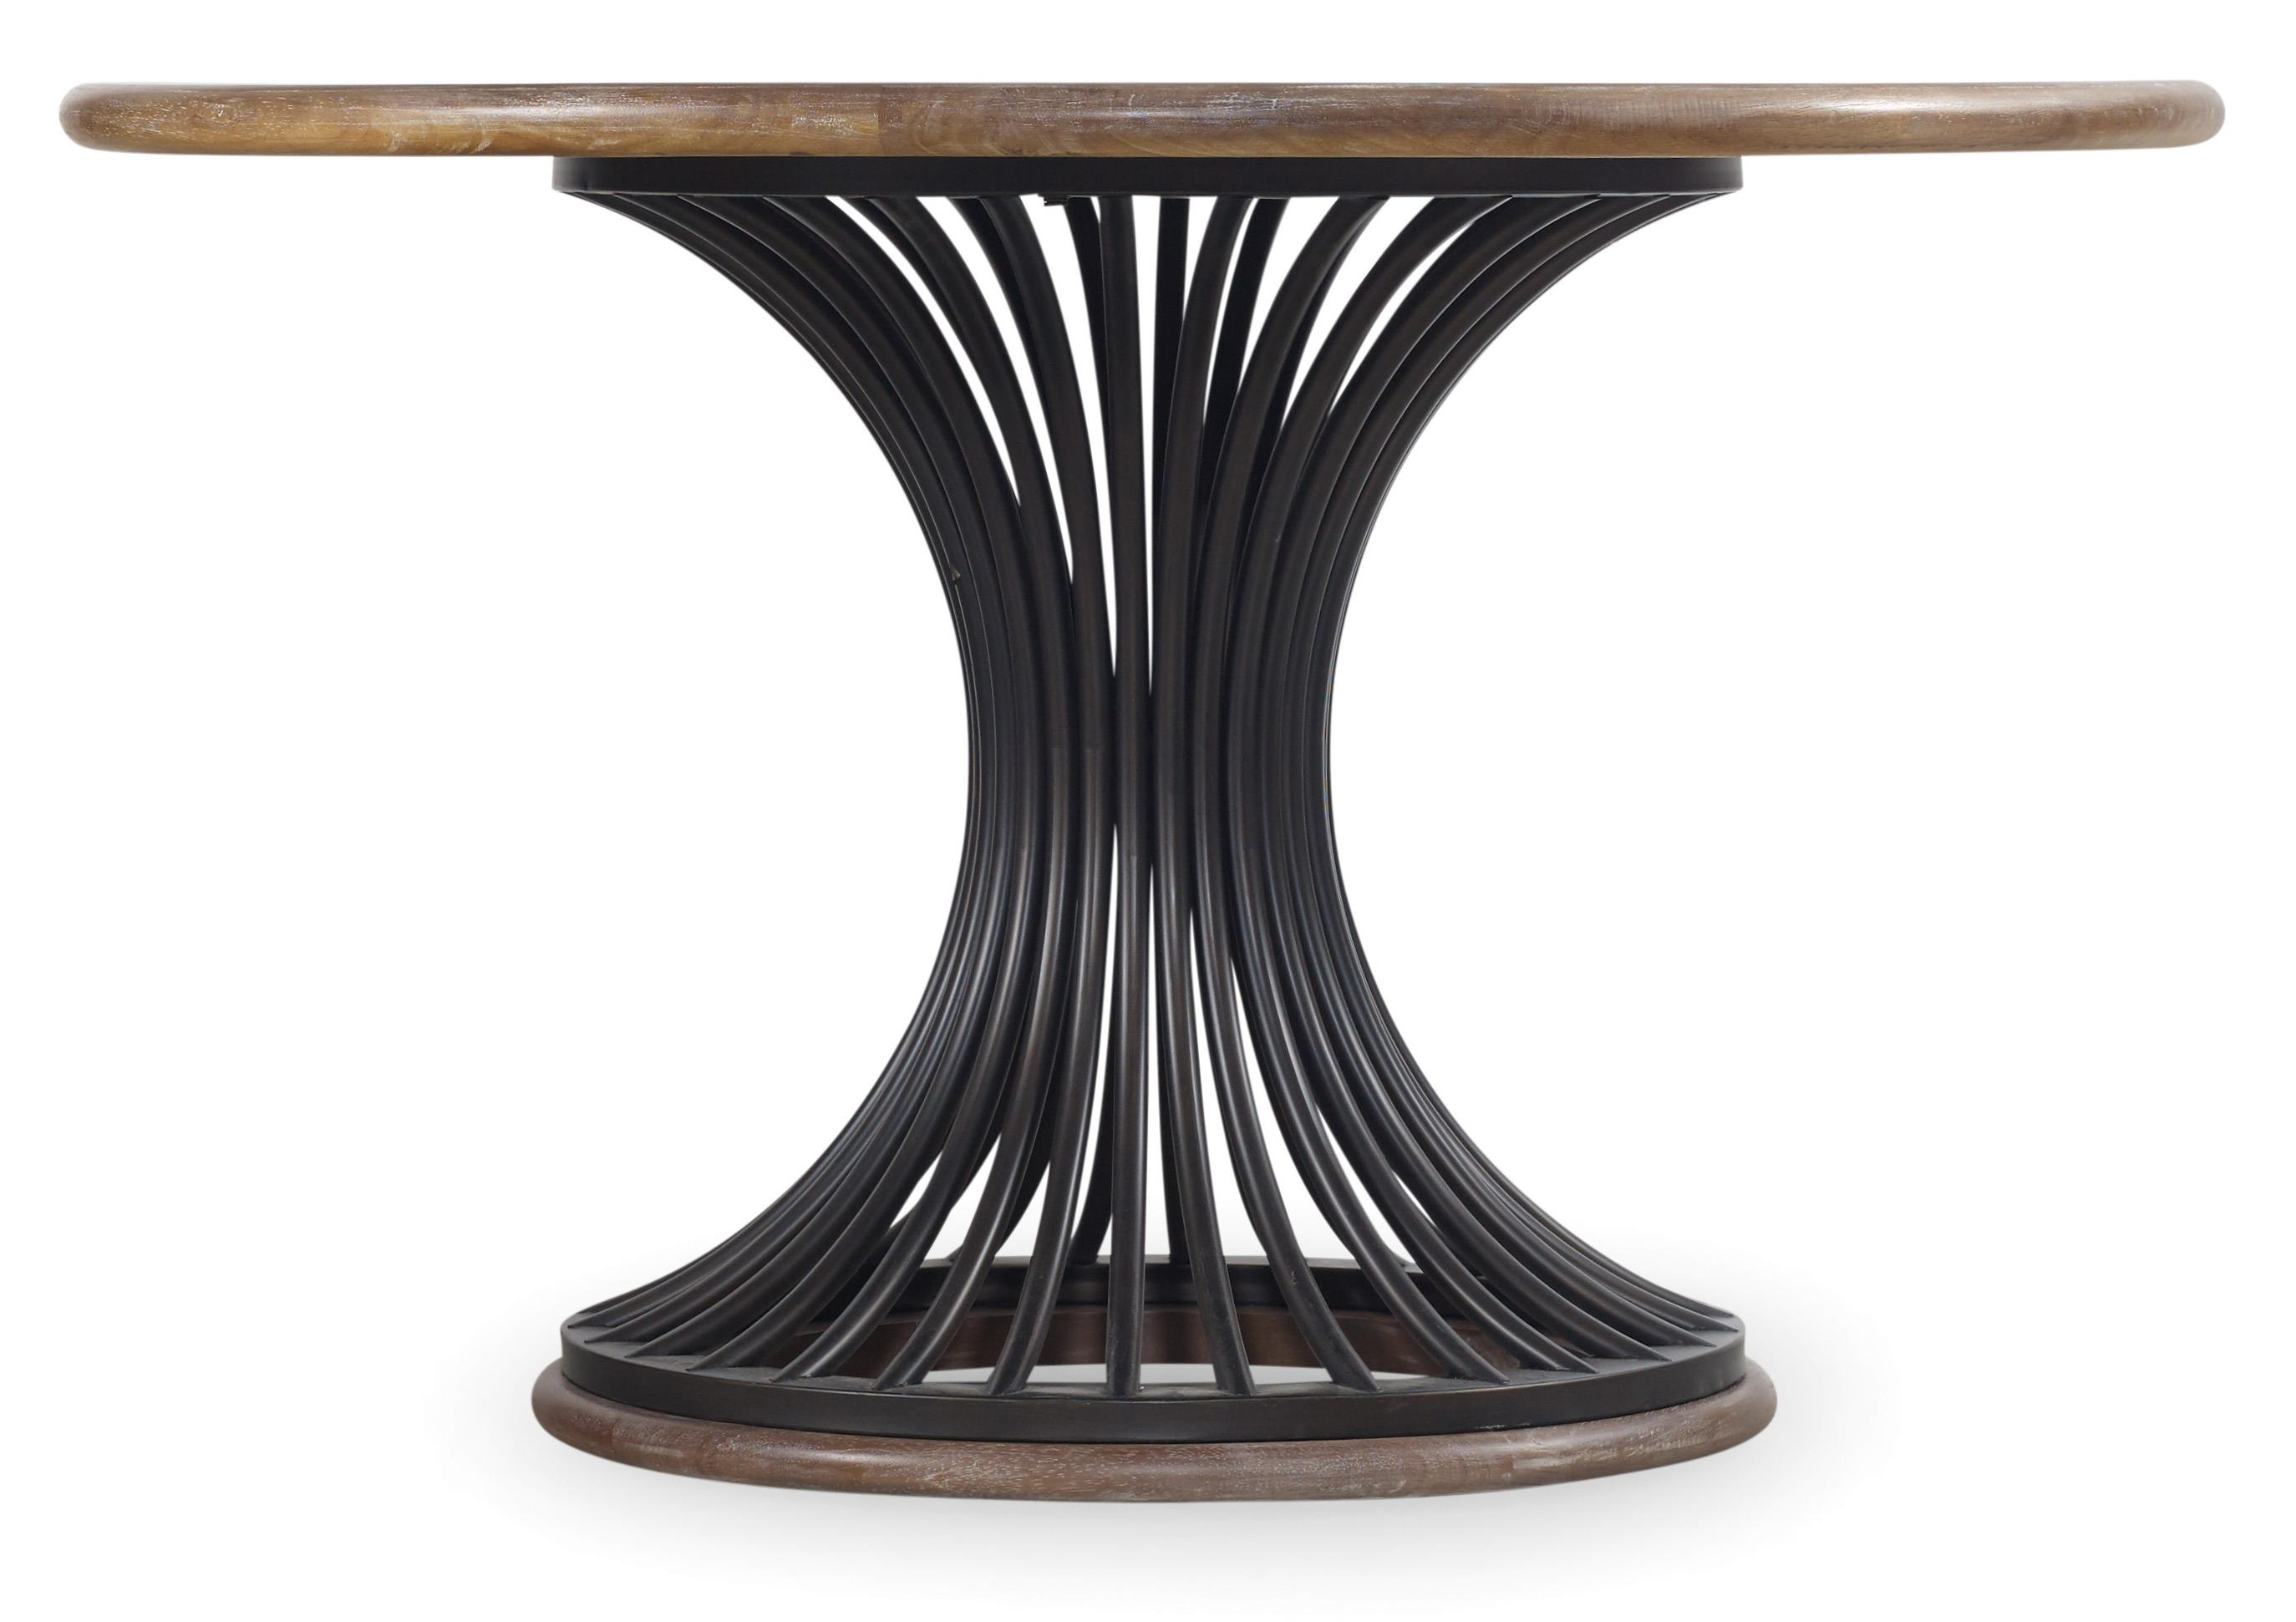 Hooker Furniture Studio 7h 5382 75203 48 Cinch Round Dining Table